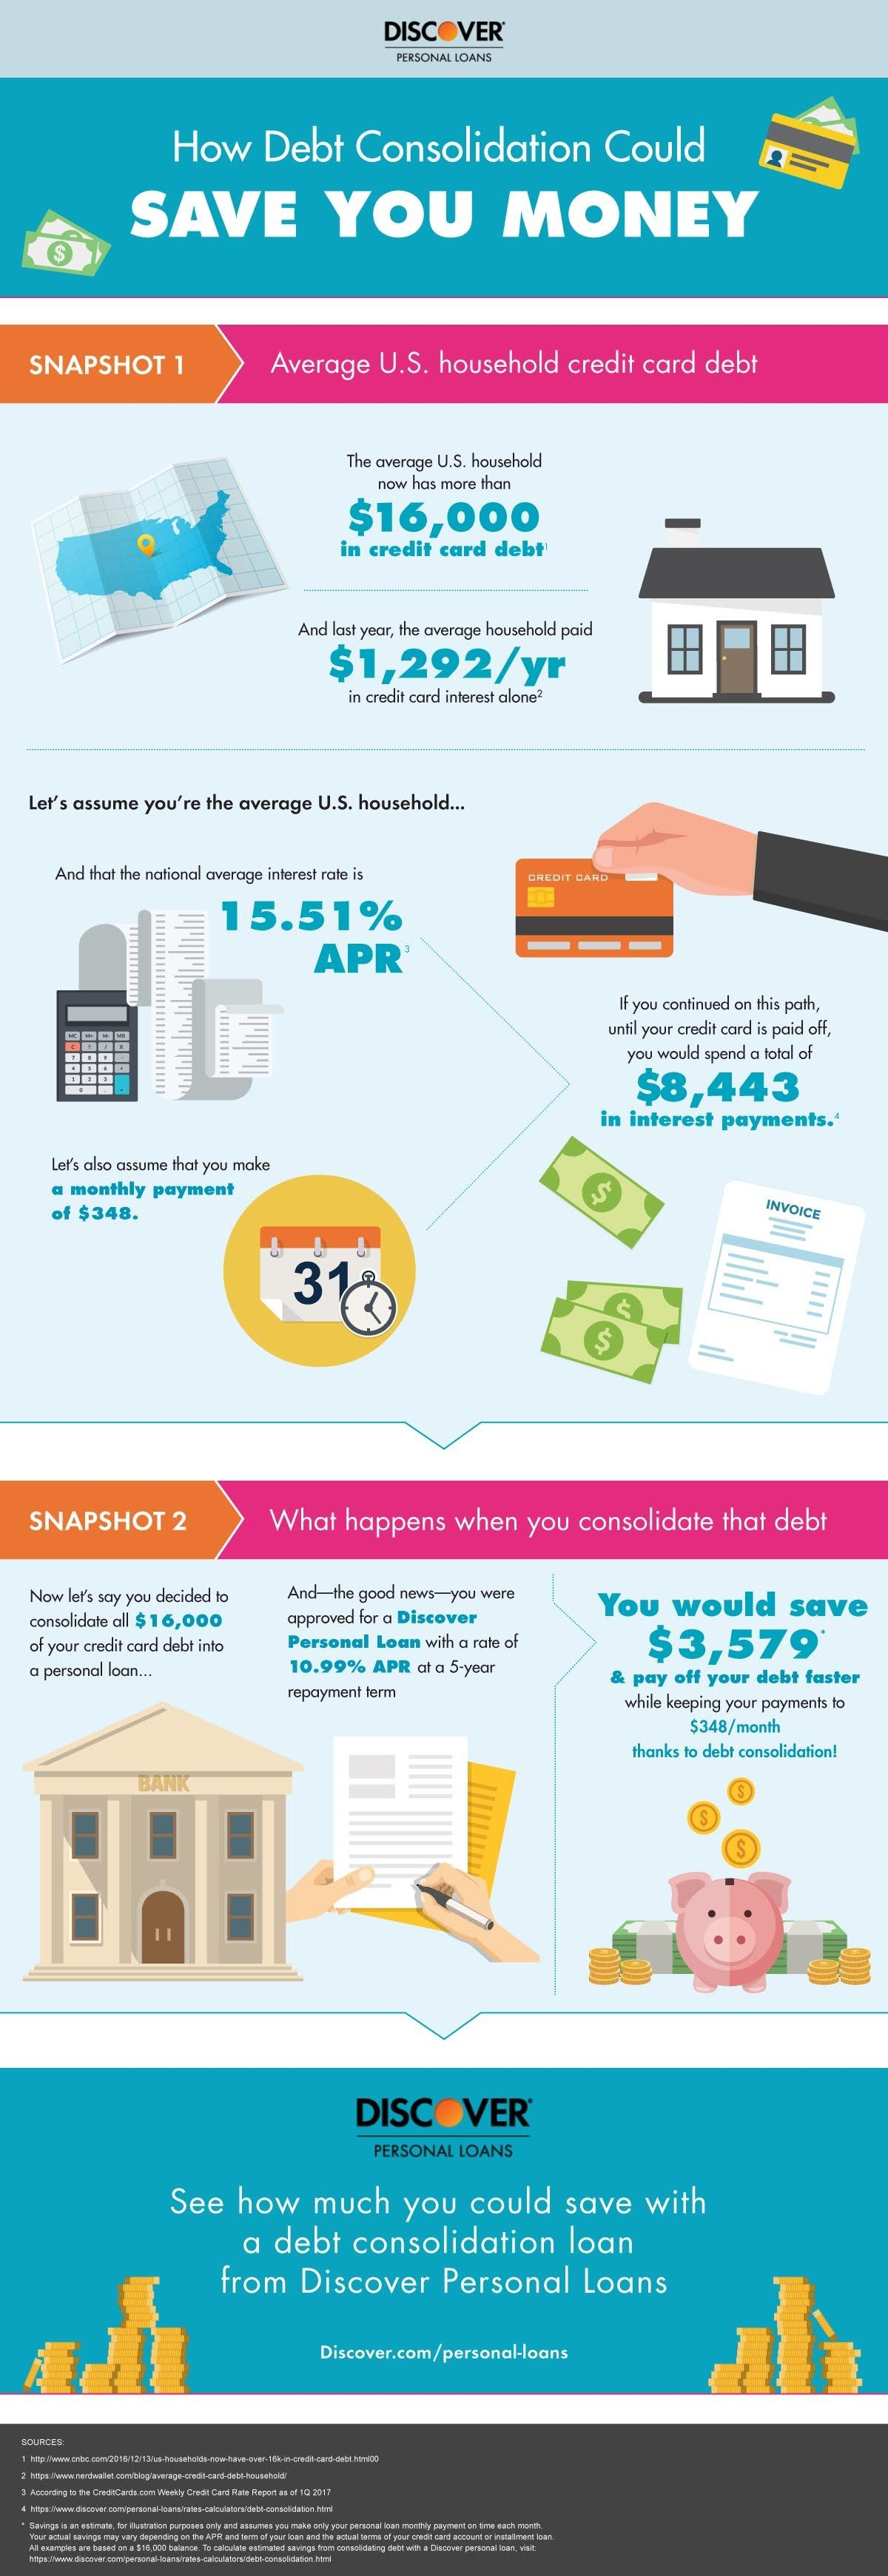 How Does Debt Consolidation Work Infographic Credit Card Debt Relief Credit Cards Debt Debt Consolidation